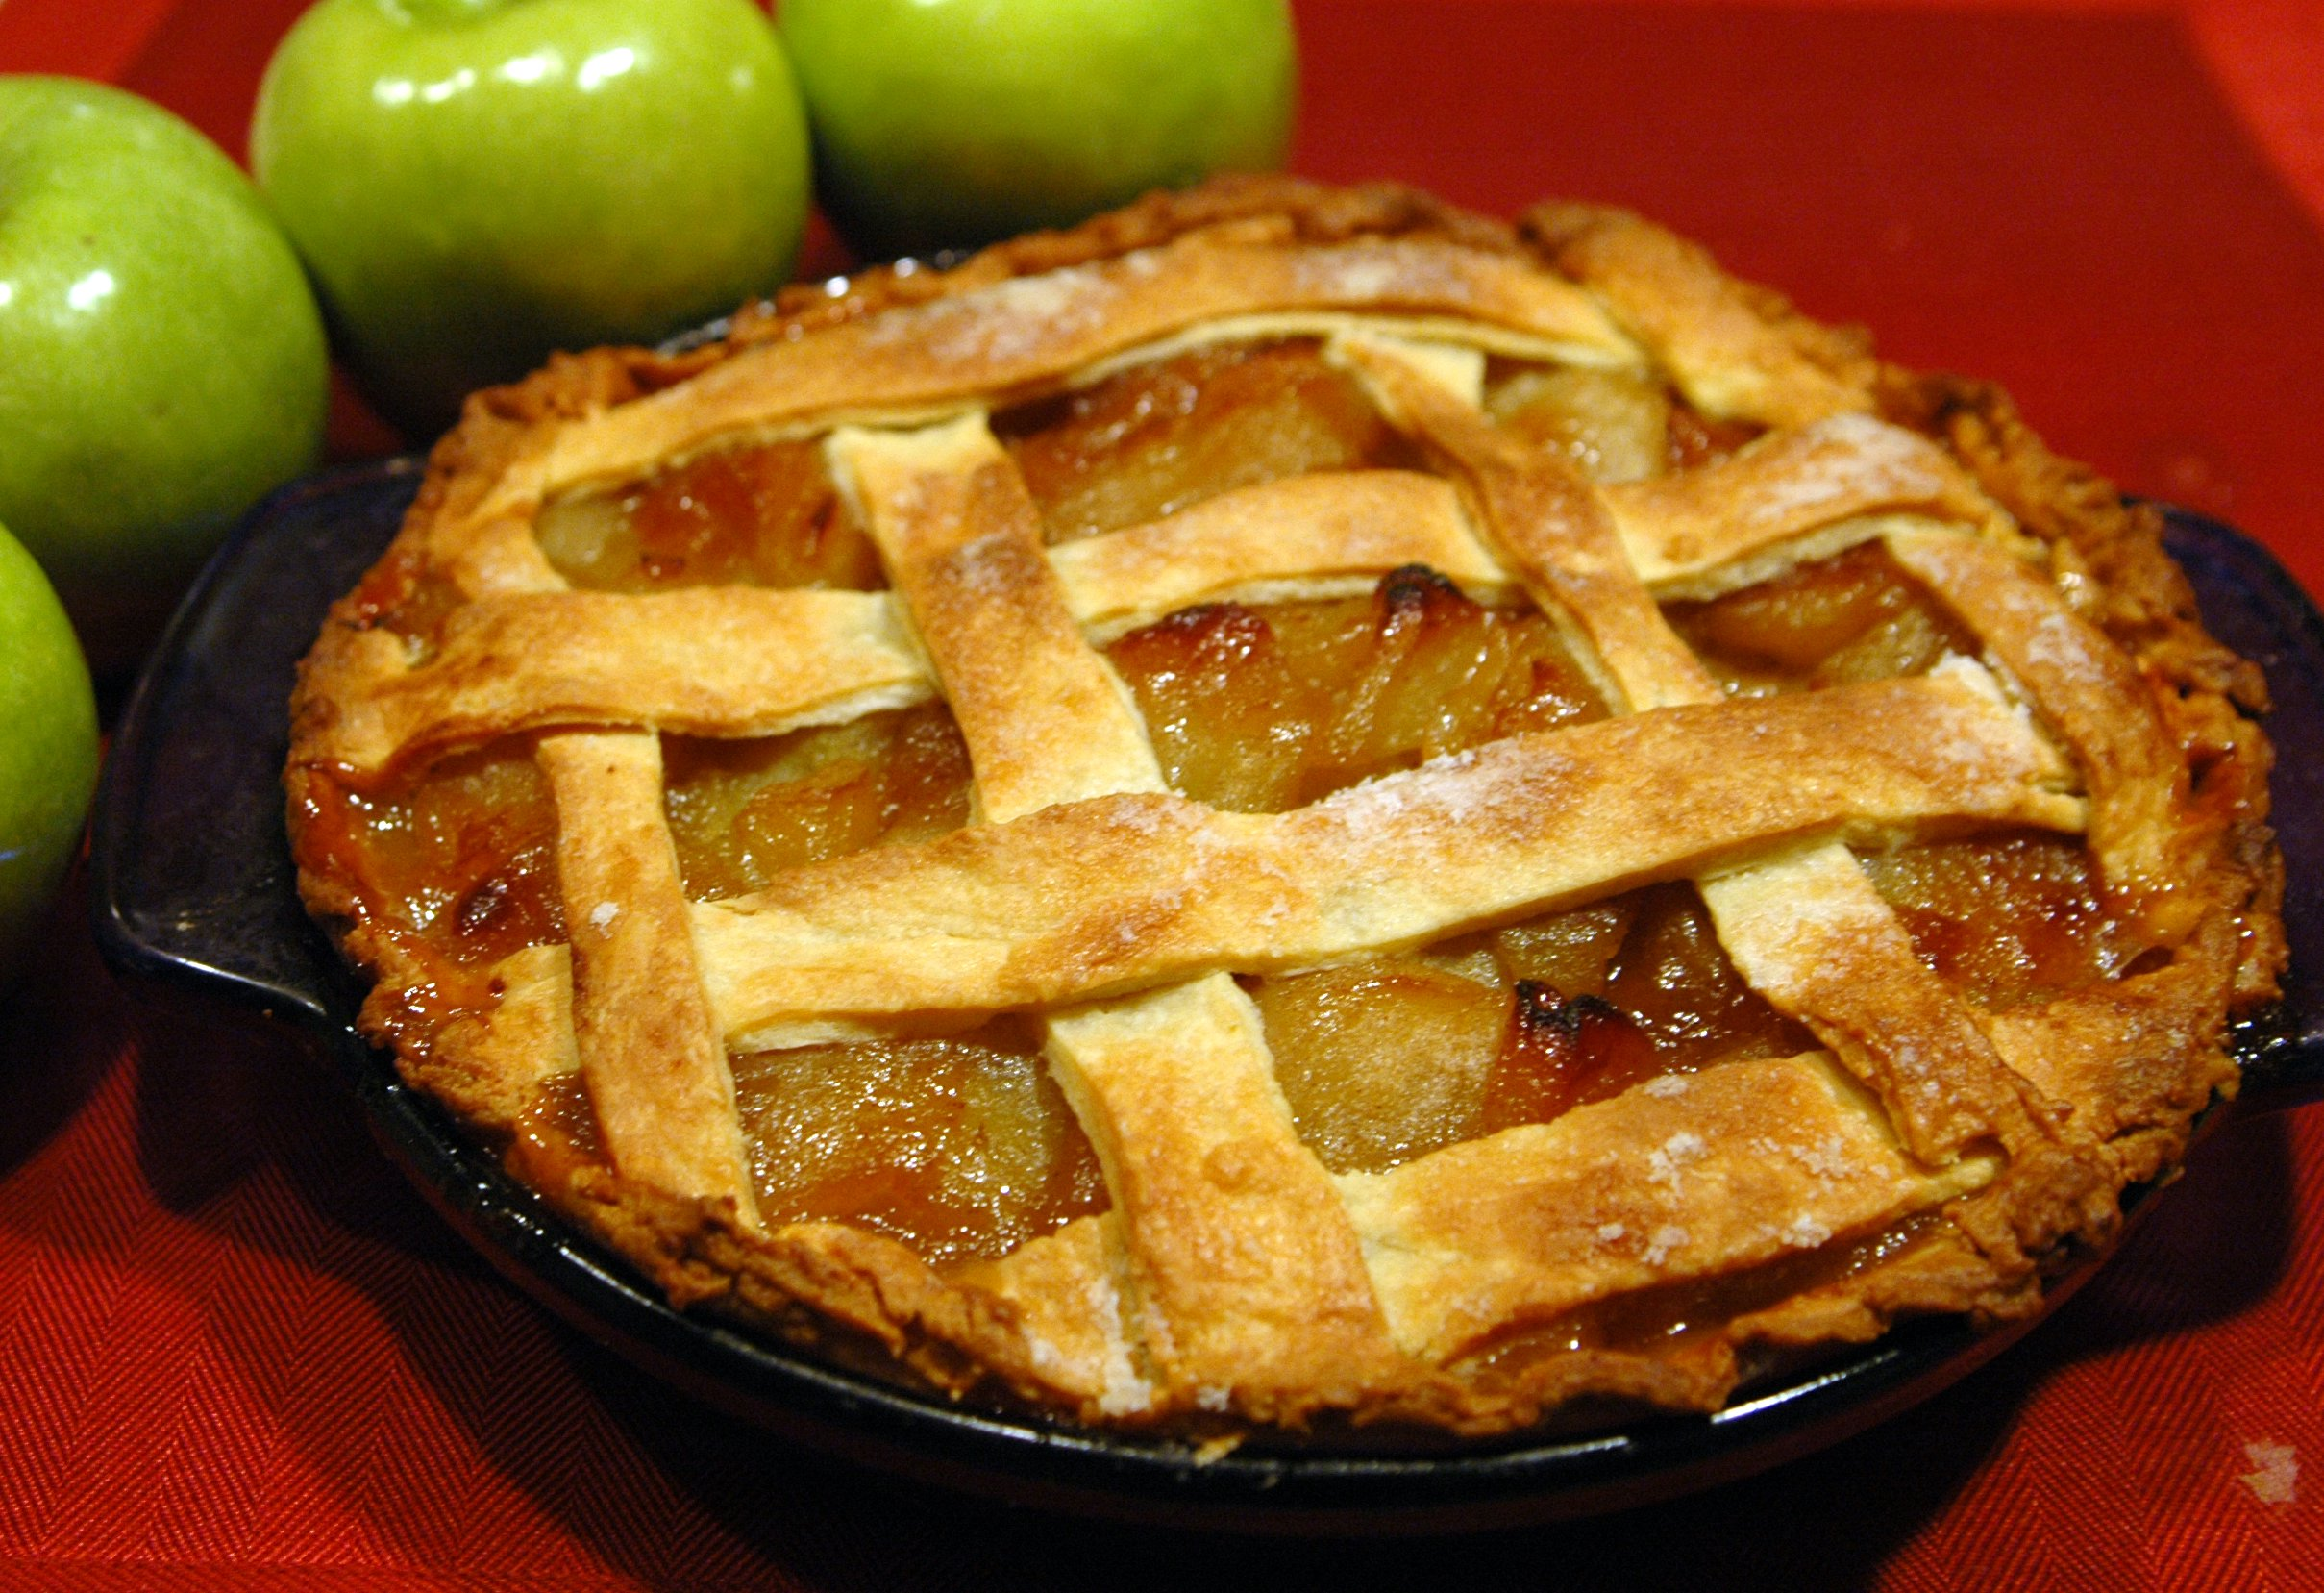 File:Apple pie.jpg - Wikimedia Commons